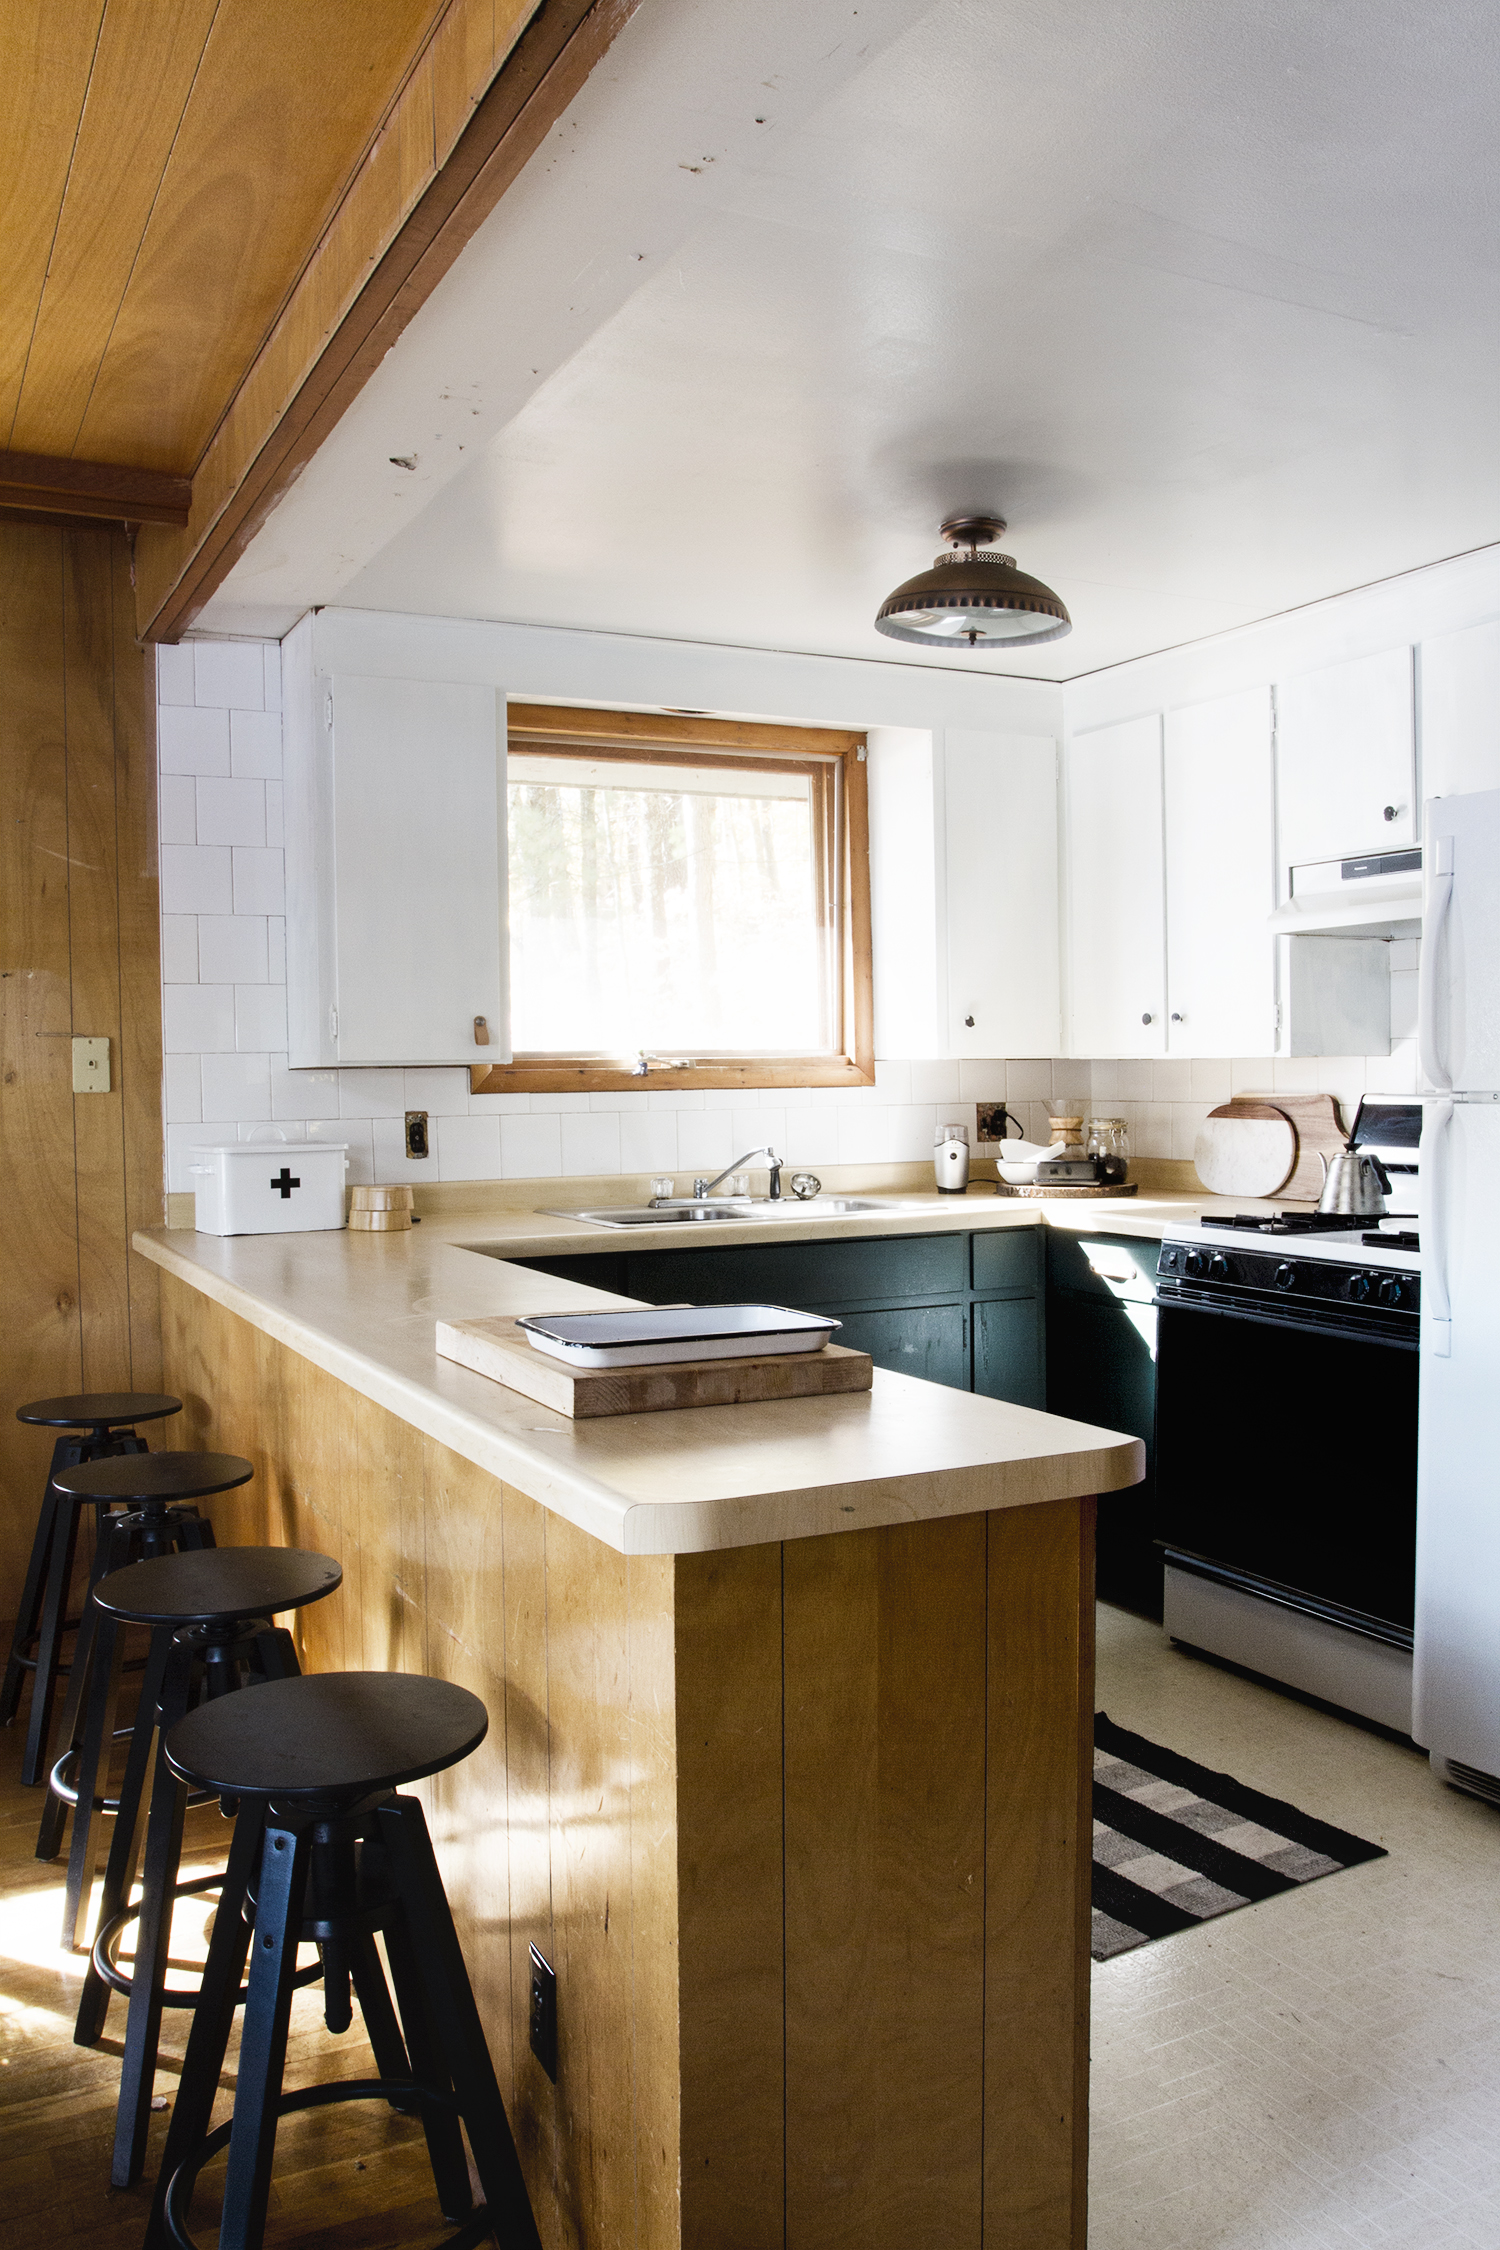 A Wisconsin A-Frame Style Cabin Renovation Story | Deuce Cities Henhouse